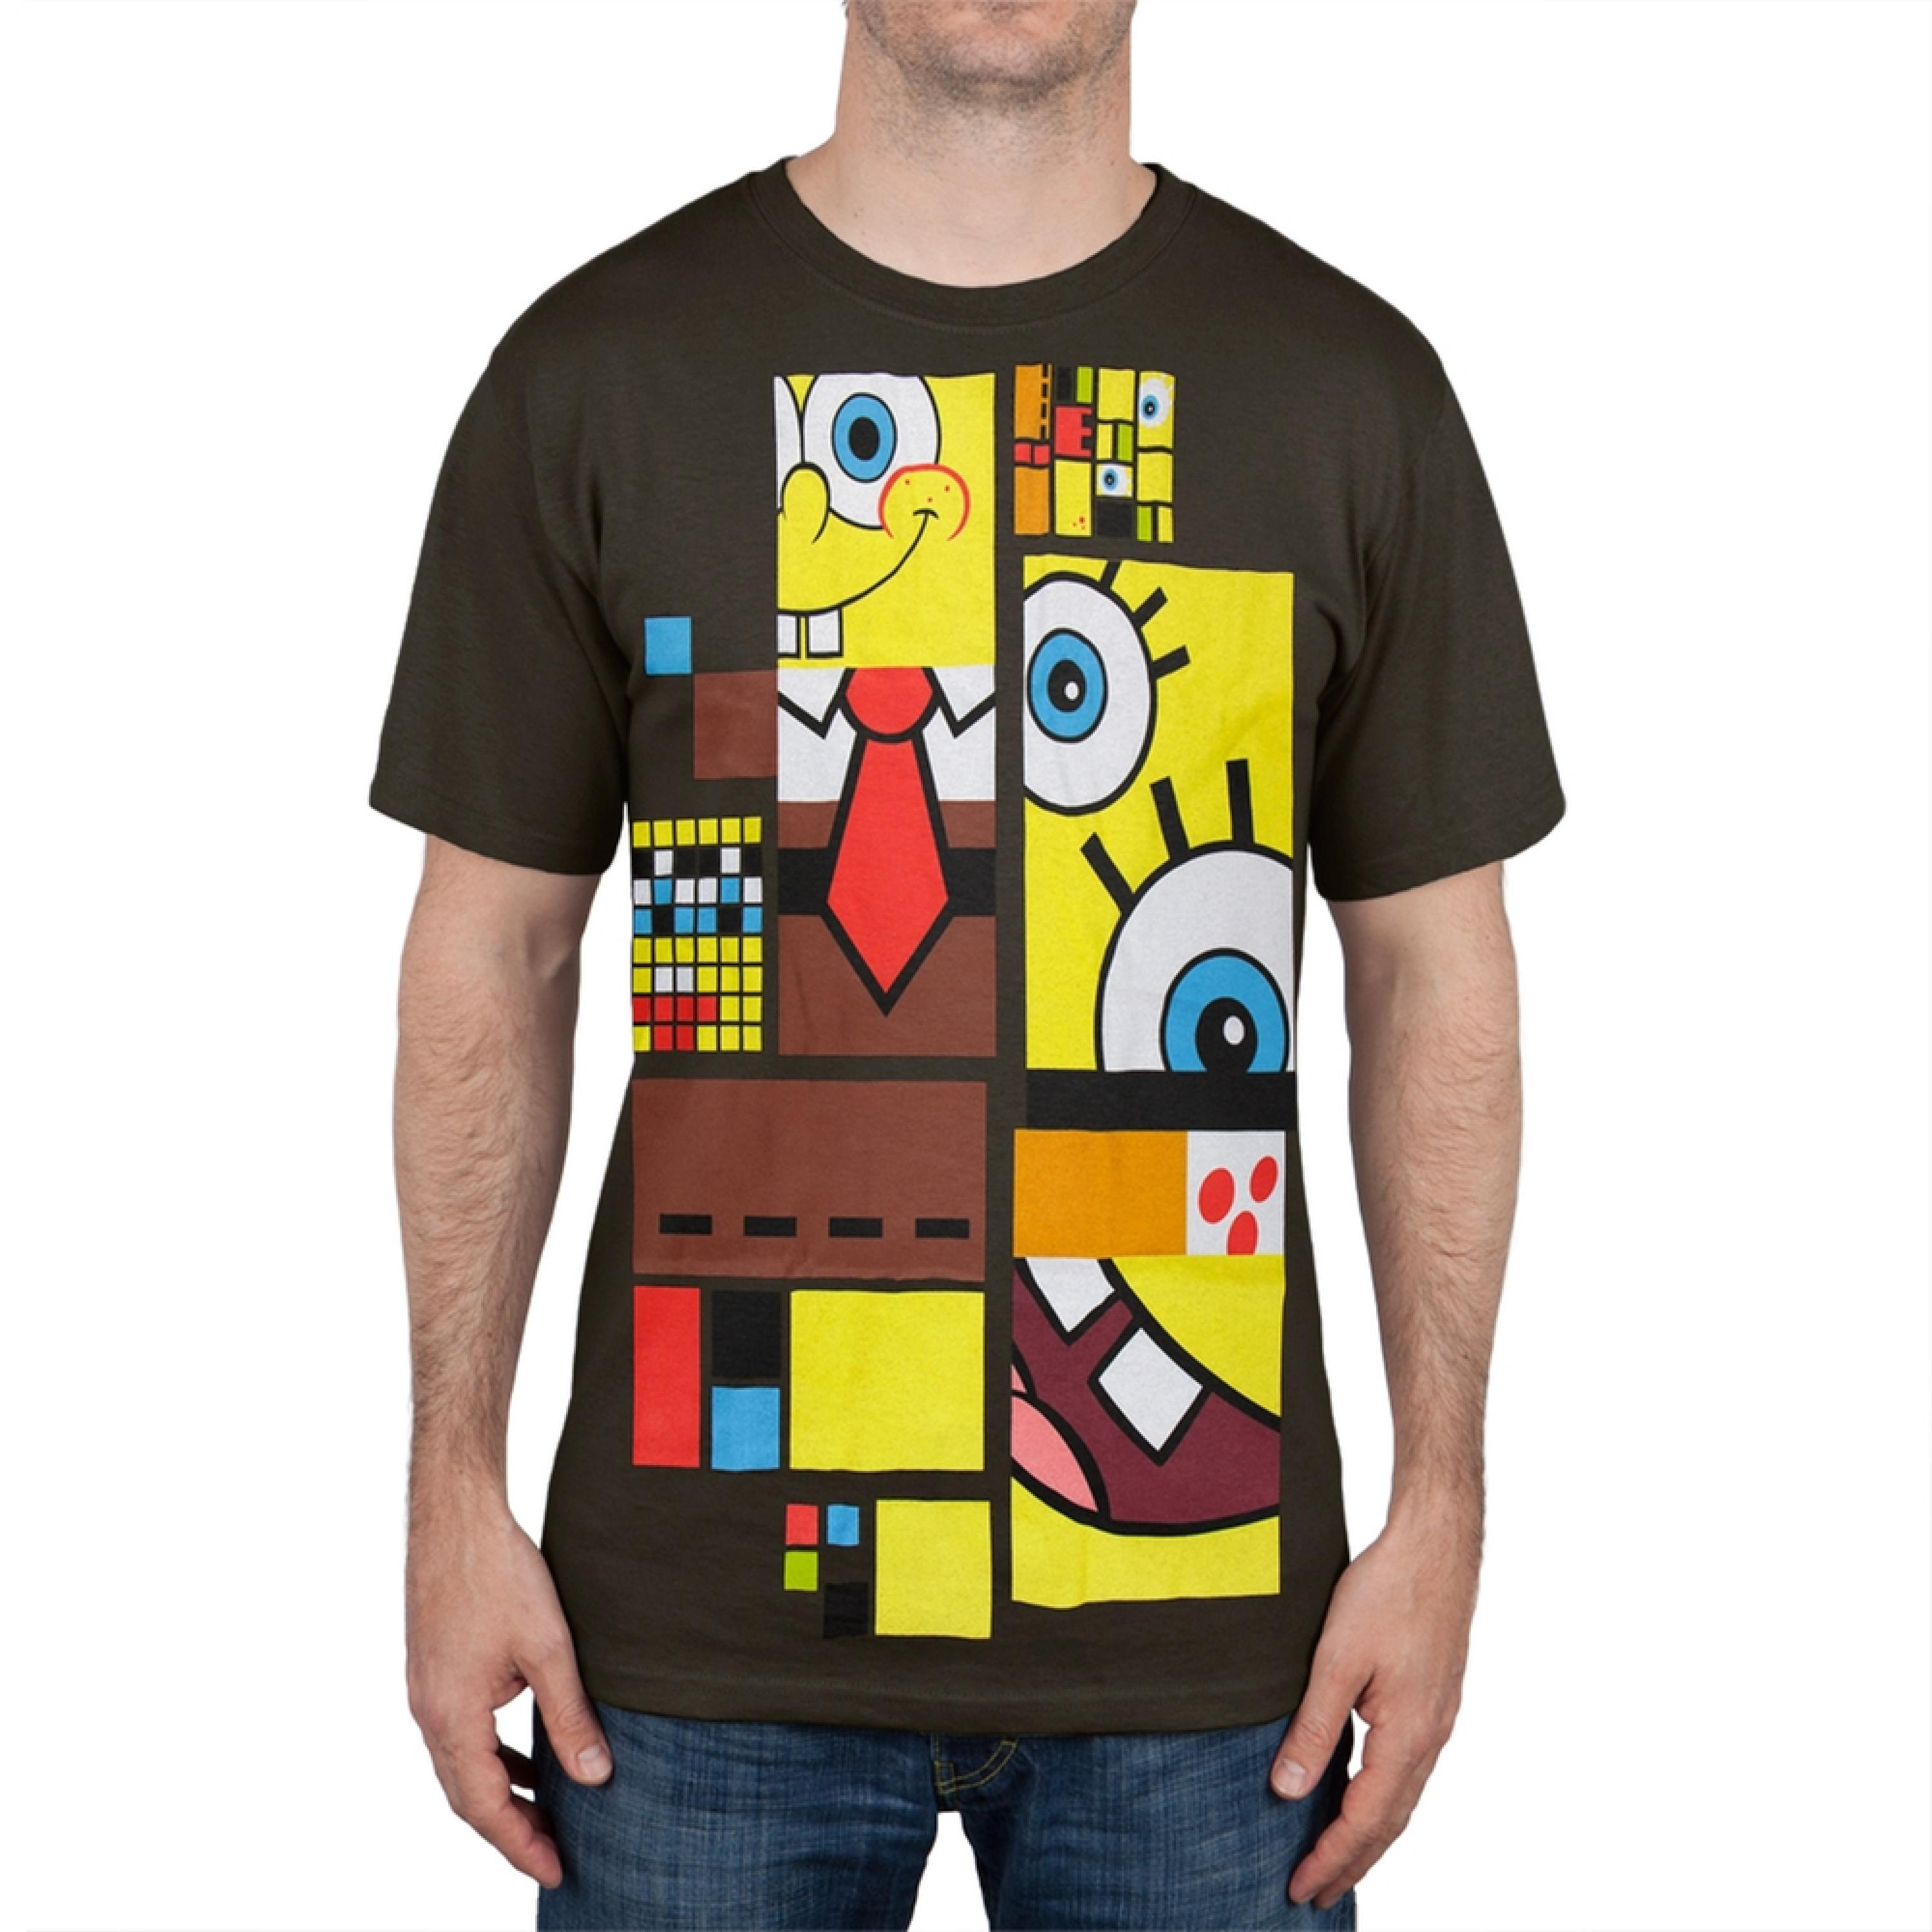 Spongebob Squarepants - Art Deco Spongebob T-Shirt